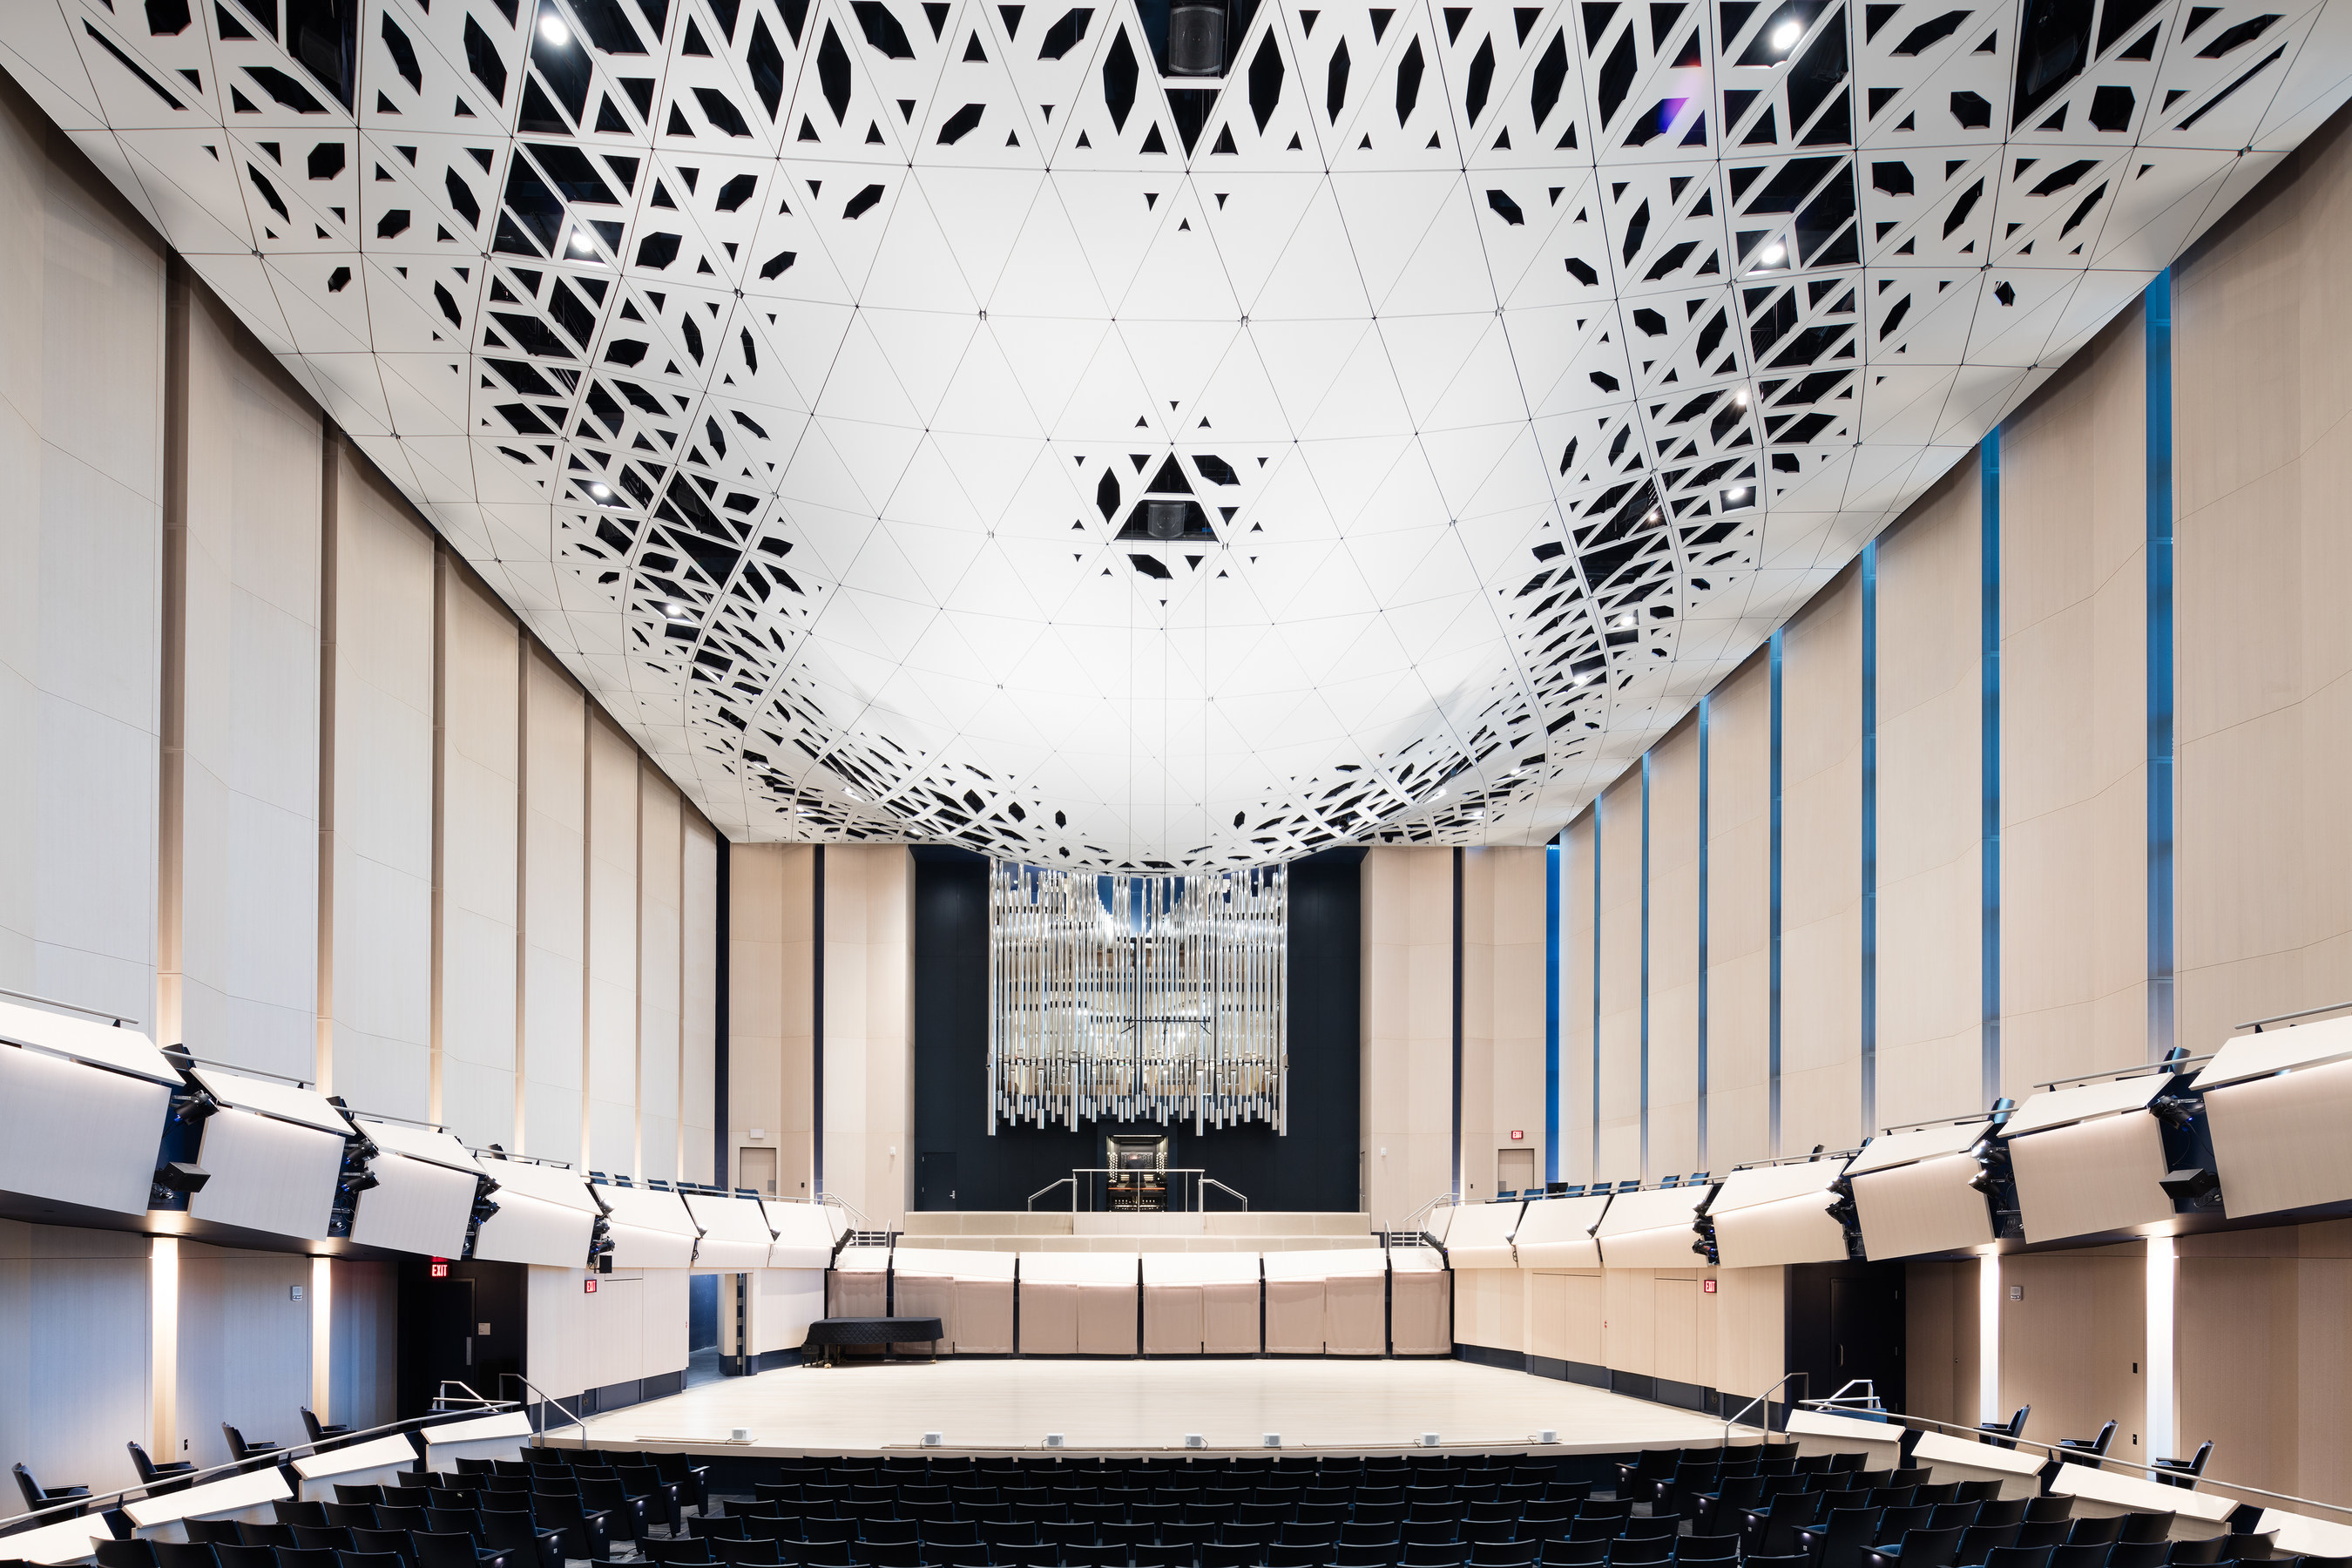 """Voxman Music Building, University of Iowa. The 700-seat performance hall features a """"theatroacoustic"""" ceiling system devised to unify acoustics, lighting, and life-safety requirements into a single dramatic, multi-functional architectural expression. The resulting intricately sculpted element is assembled out of 946 unique, folded-aluminum composite modules. Image courtesy LMN Architects."""